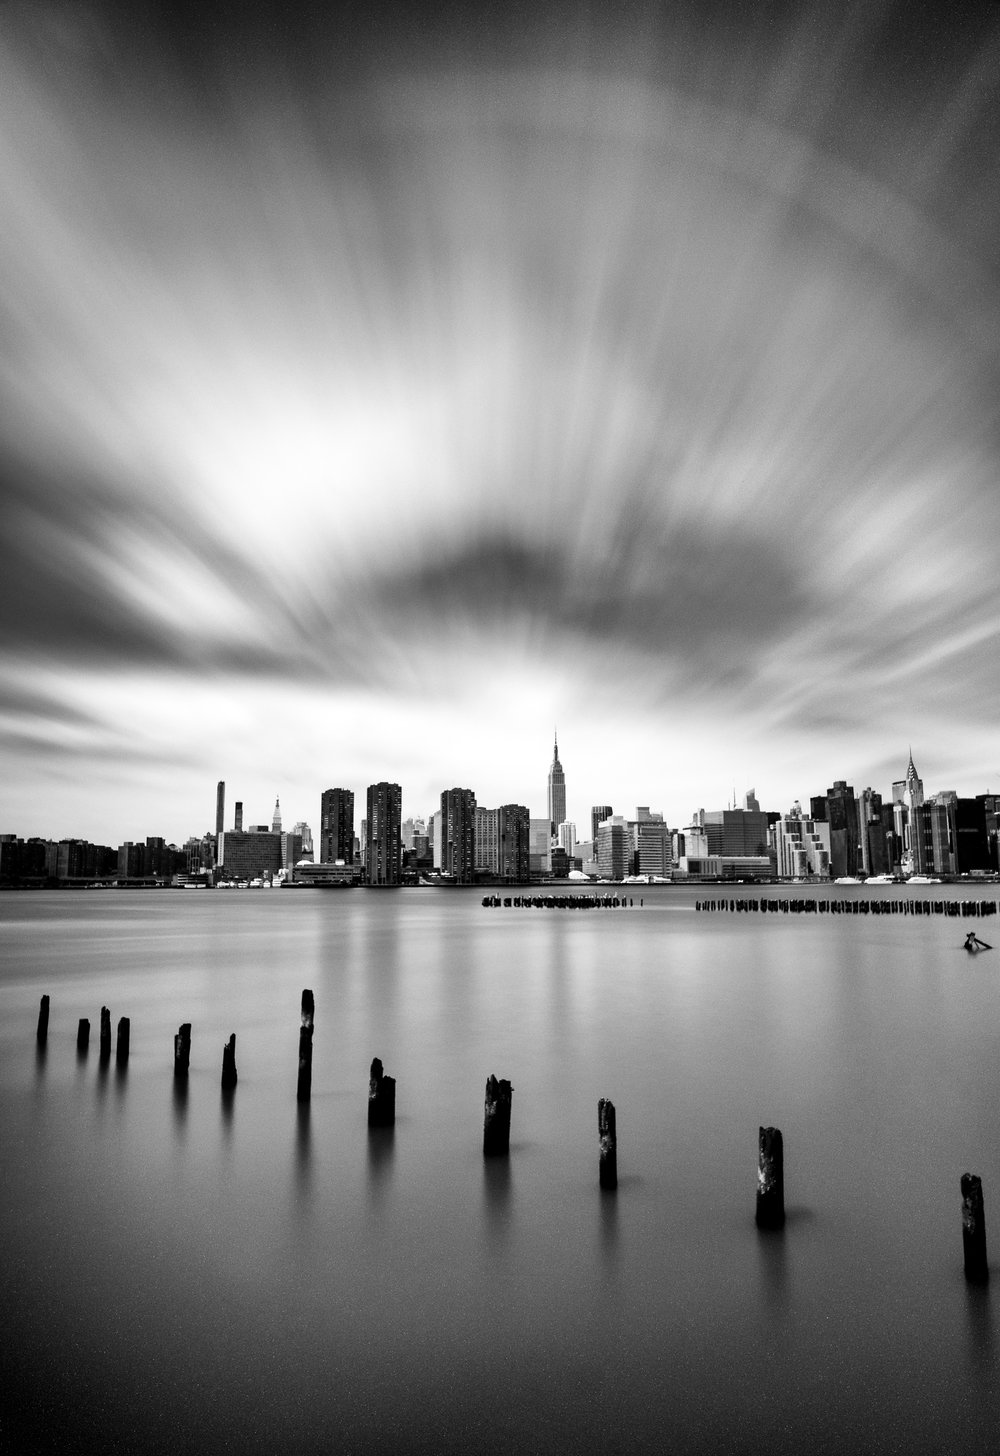 """Live fast"" May 11, 2018. Greenpoint, Brooklyn Fujifilm XPro2, 14mm, f/8, 243 sec, ISO 200   This four minute long exposure was long enough to give the clouds over New York an epic motion blur. The semi-circle at the top of the frame was a happy accident - it's caused by the rim of my lens reflecting back in the ND filter that I added to the front of my camera for the long exposure.  This photo was included in an article in FeatureShoot called  The Magic of Black and White in 27 photos     Thanks for reading! And if you want to see more, you can check out  2017's Year in Review ,  2016's Year in Review ,  2105's Year in Review , or  2014's Year in Review . Or follow me on  Flickr  or  Instagram ."